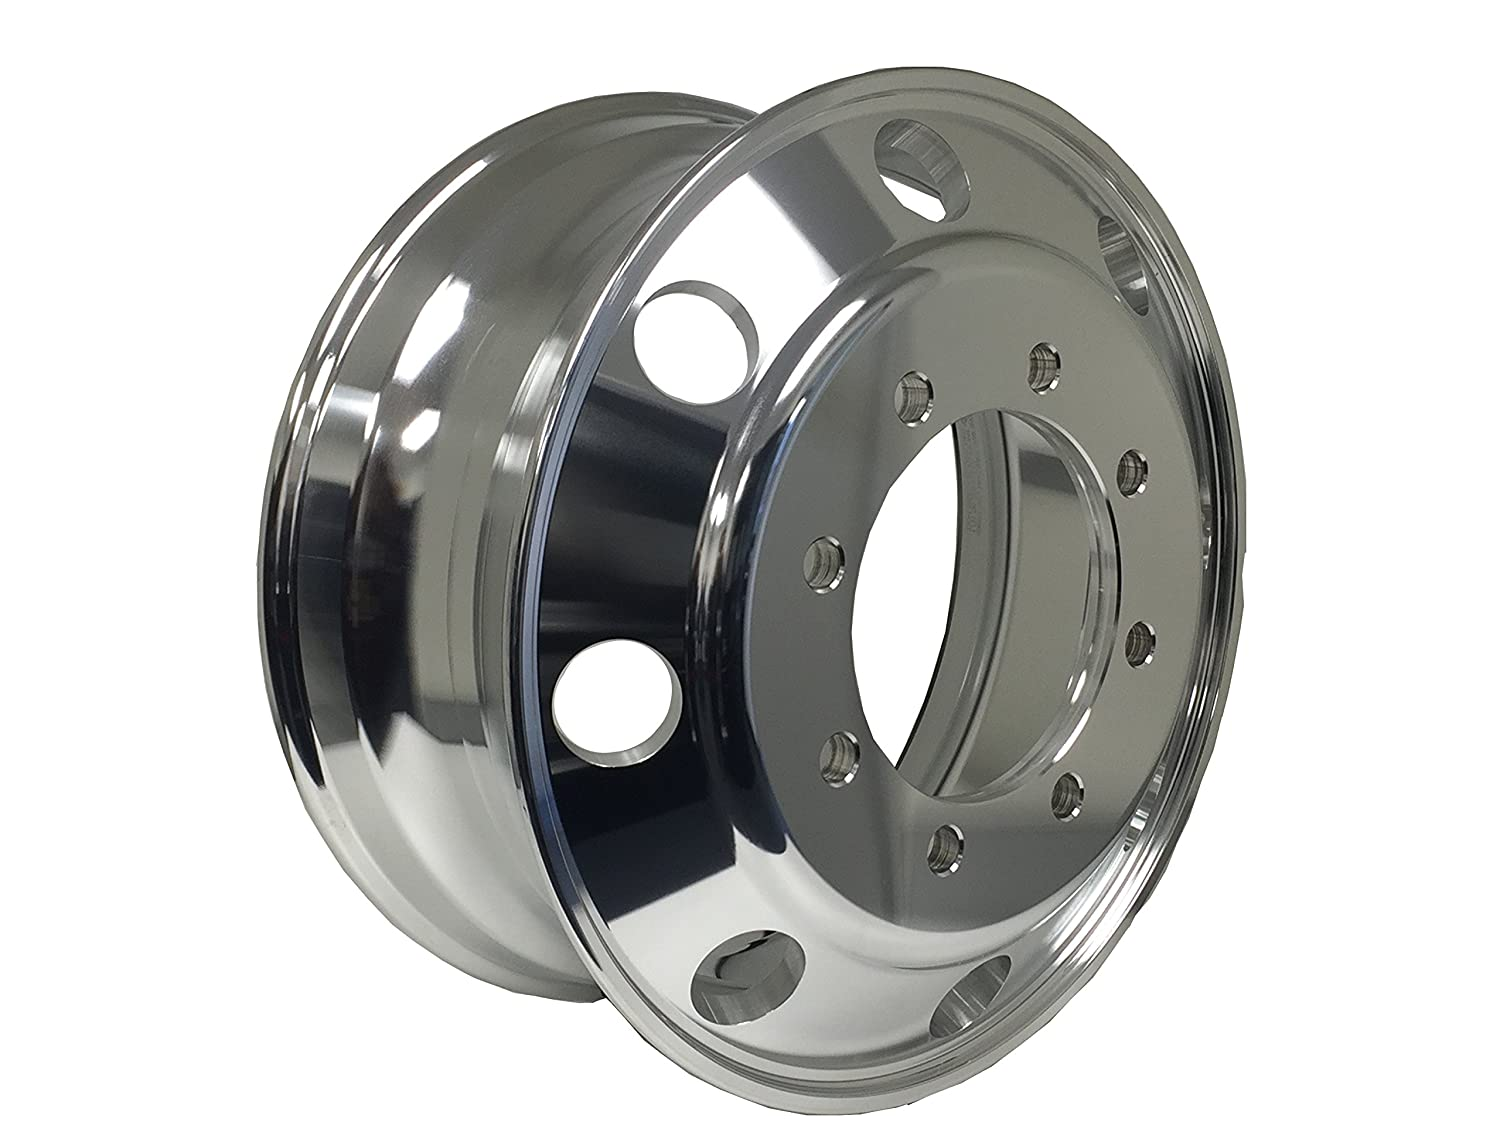 MOTORHOME A227506 Aluminum Wheels 22.5 x 7.5 Hub Pilot PCD:8X275 ALCOA STYLE Both side Polish Finished-for All Position